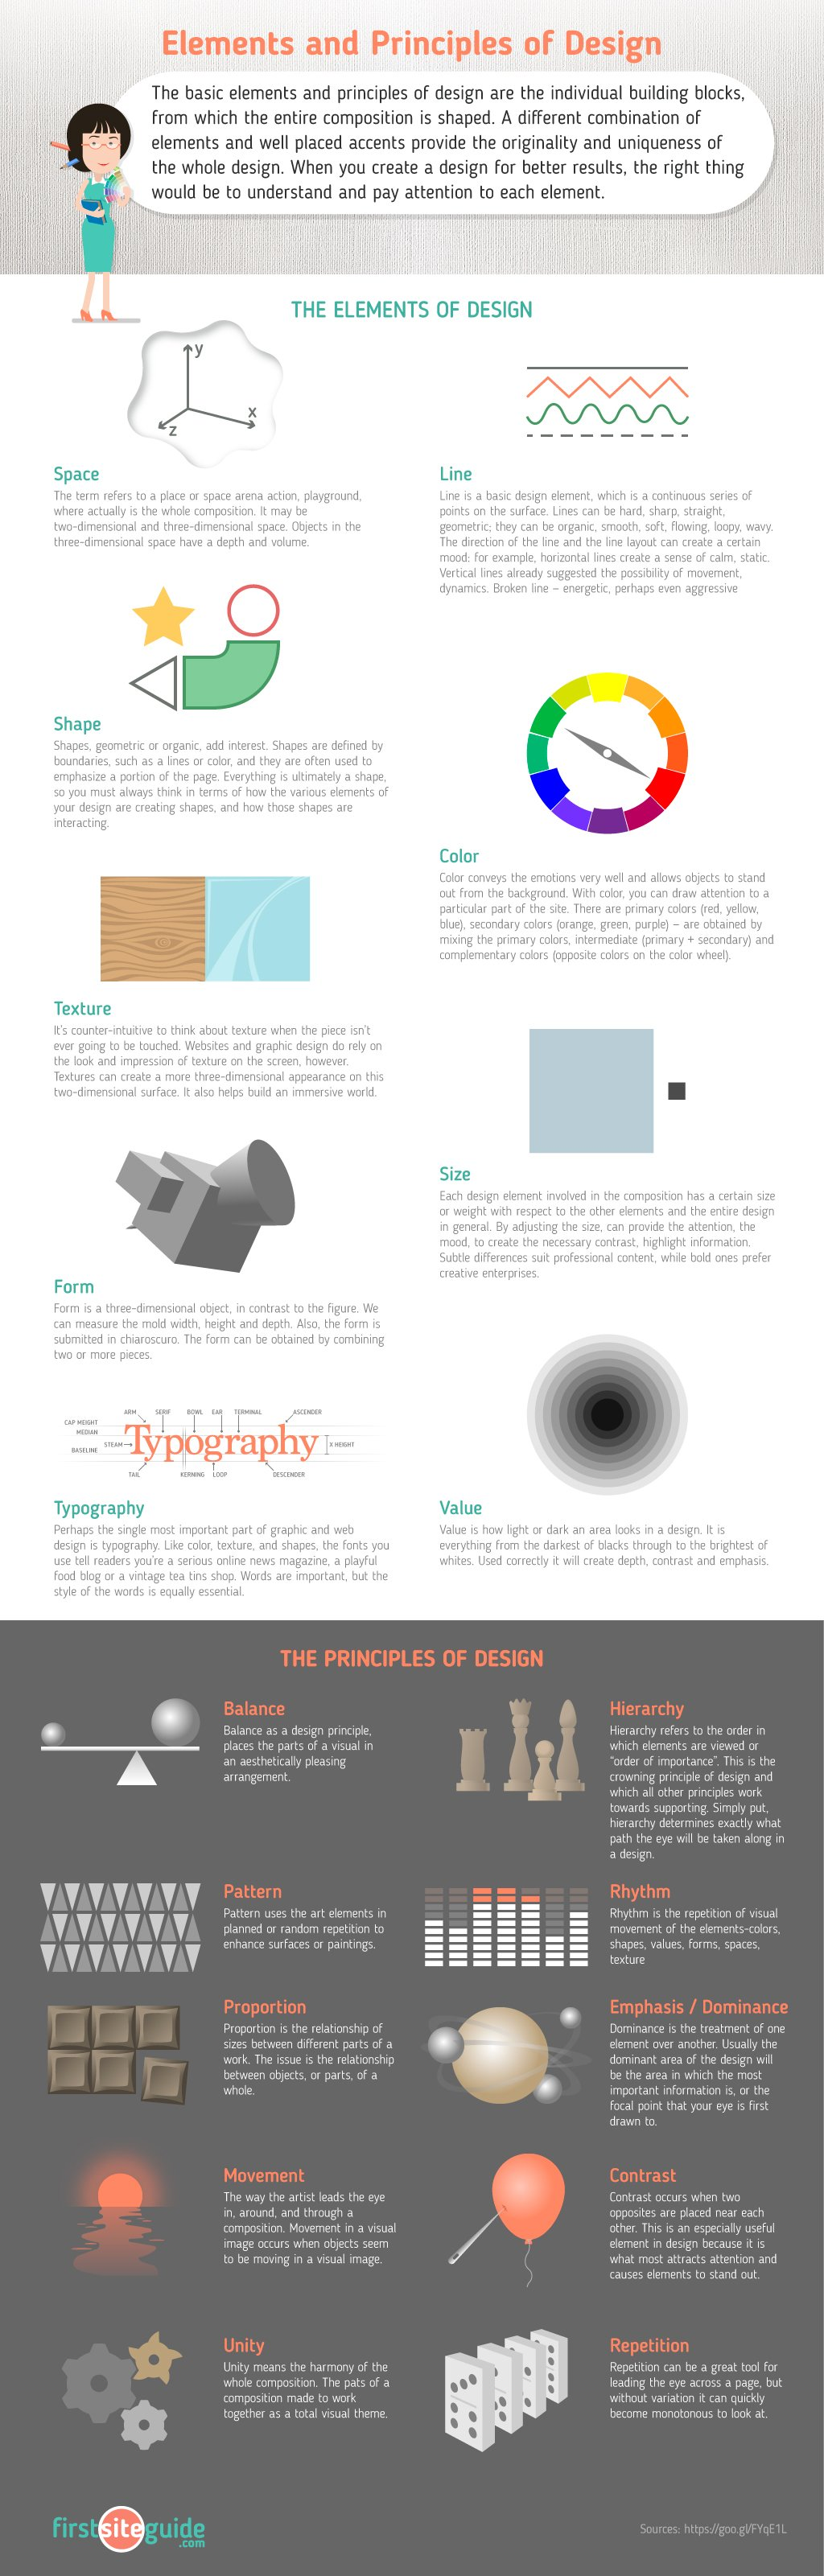 Principles Of Design List : Elements and principles of design — cheat sheet